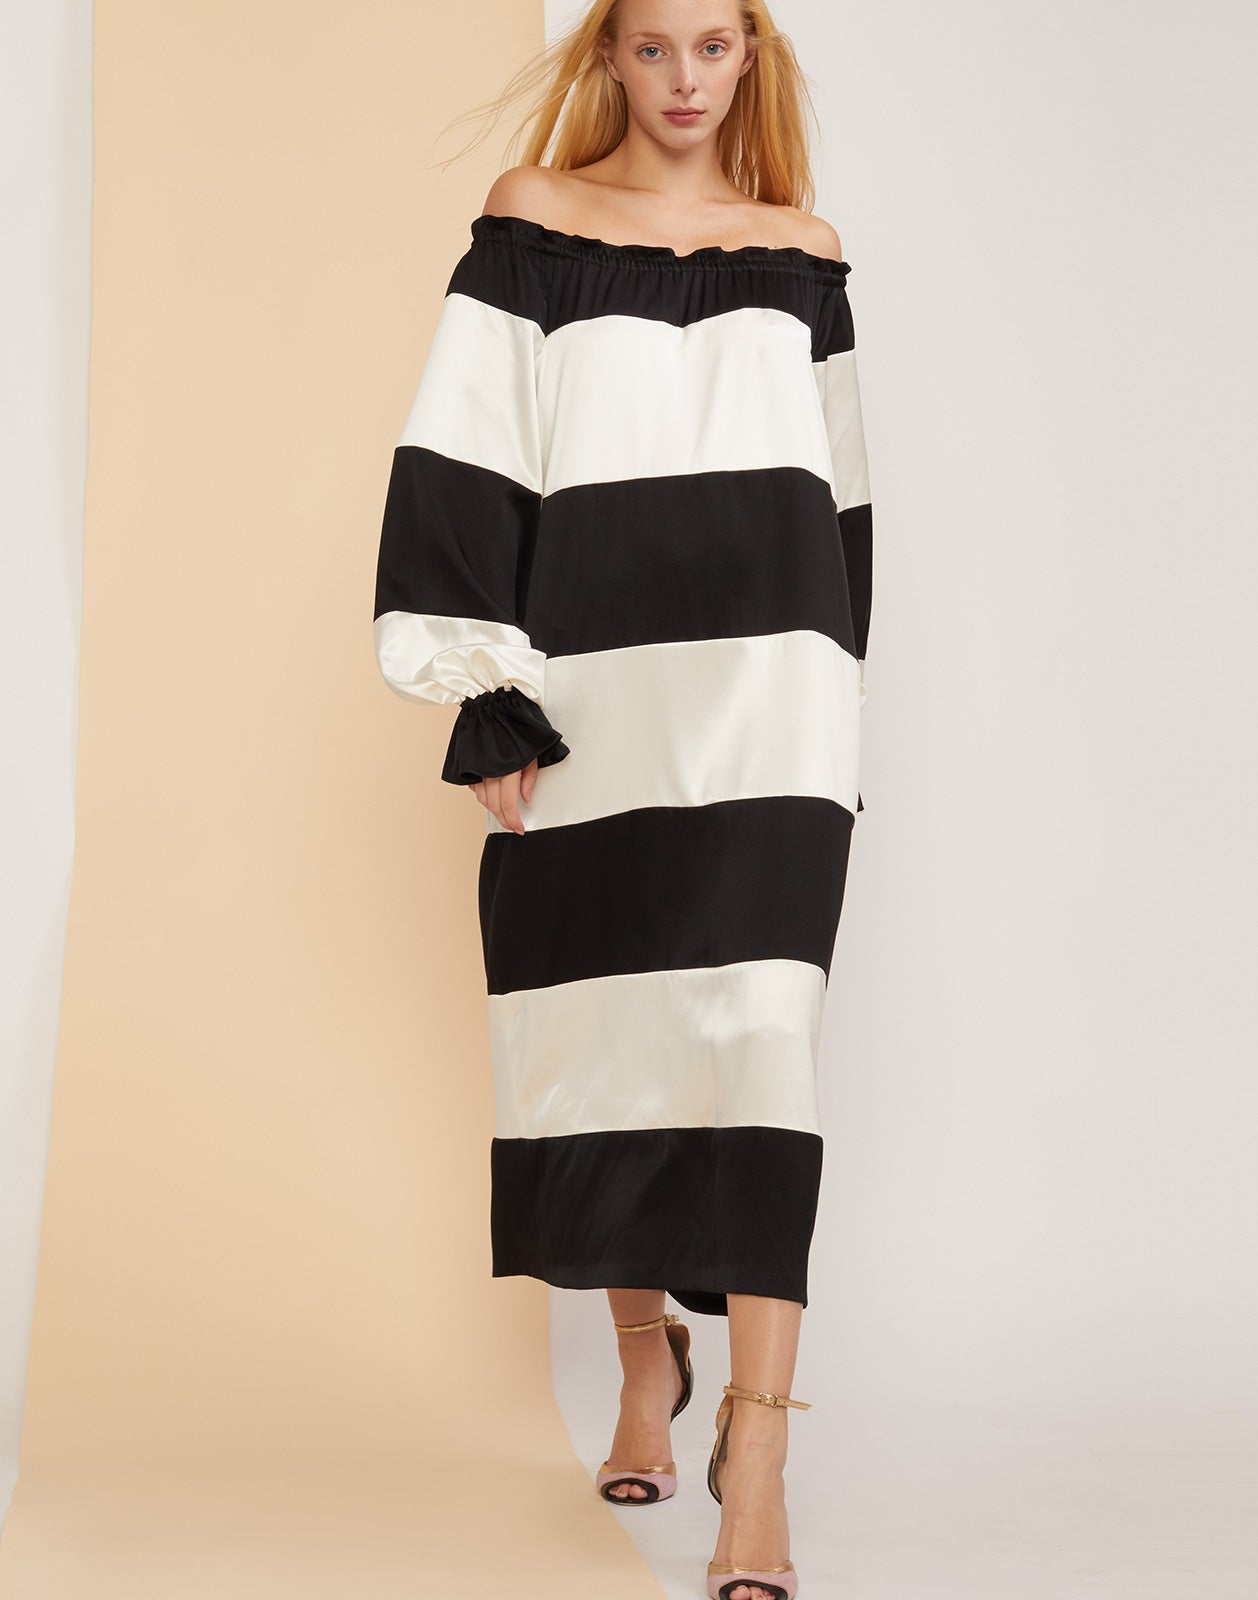 Full front view of the Shanley off shoulder black and white striped dress.